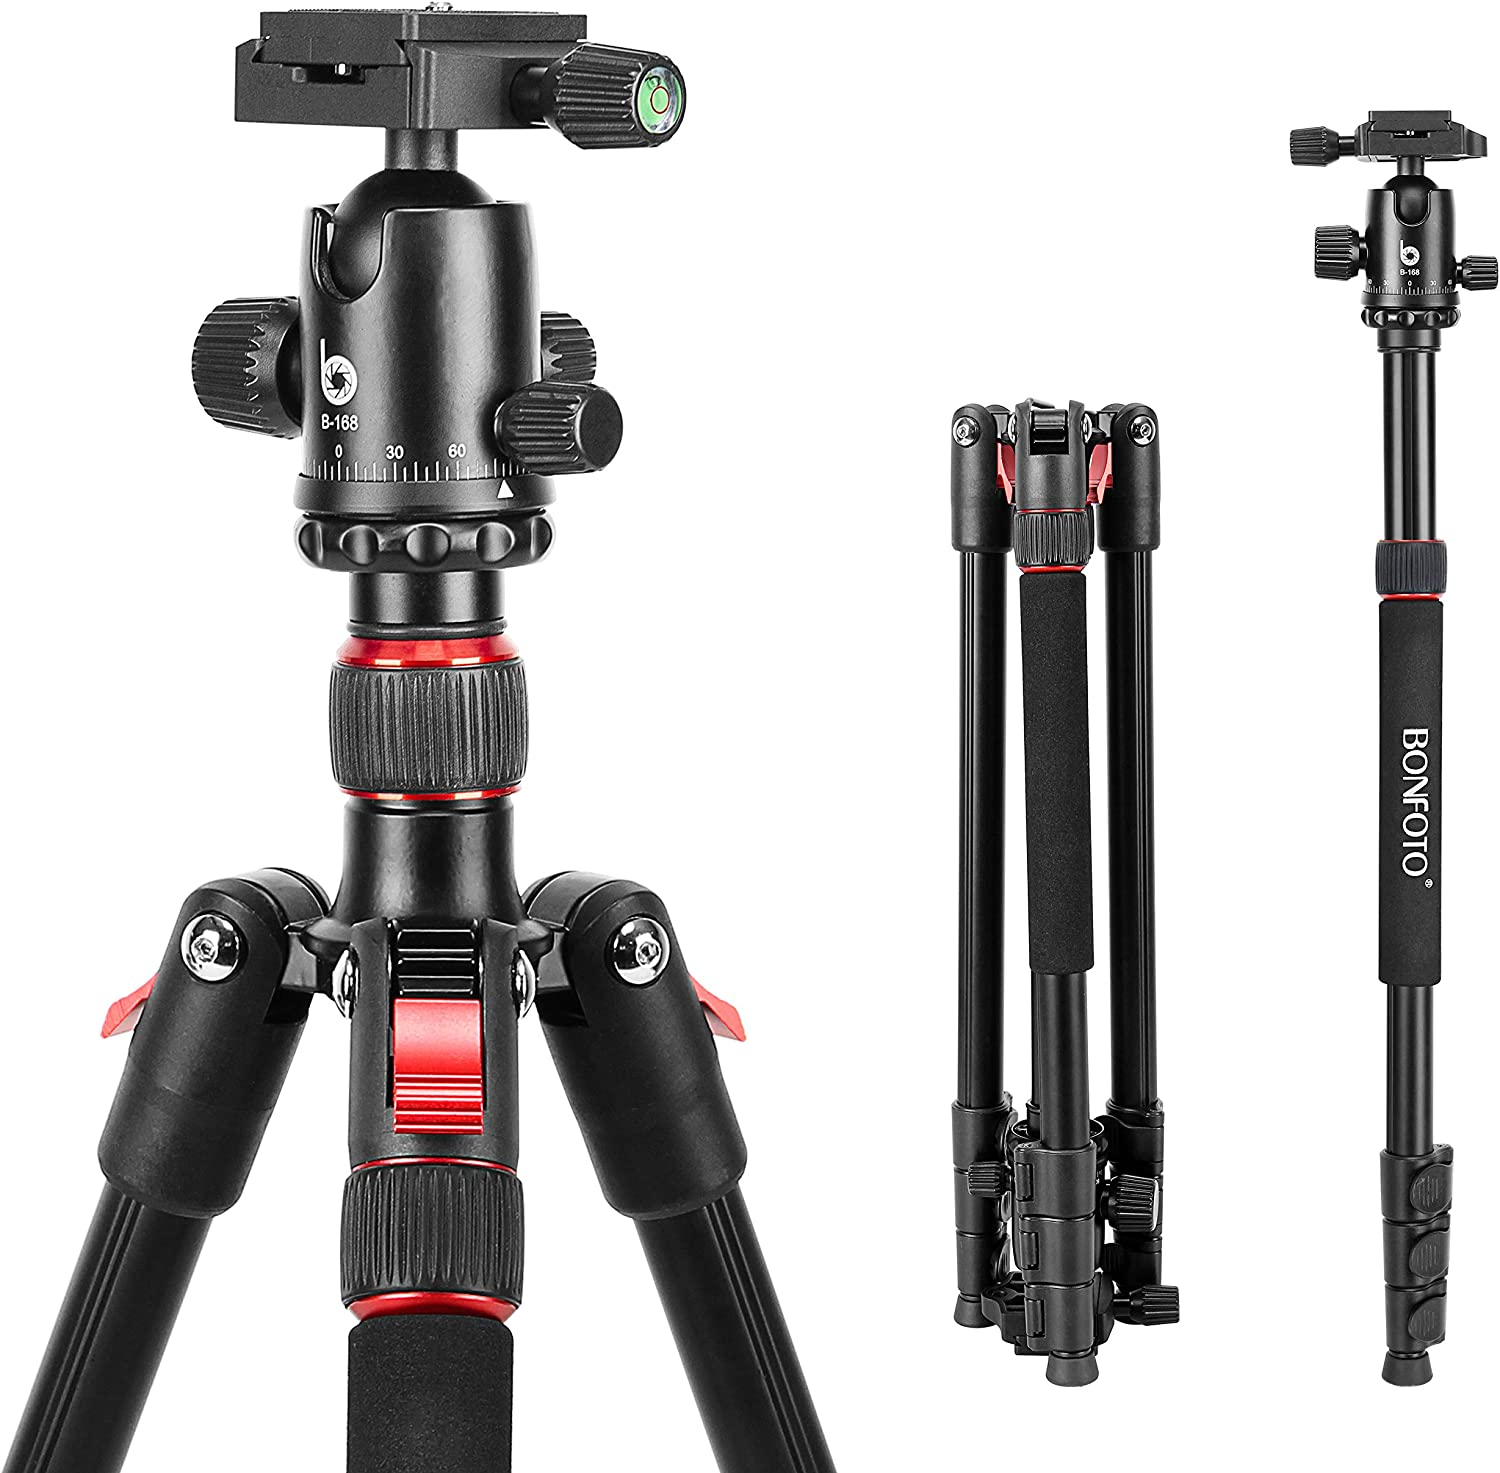 """70 Inches Tripod, Lightweight Aluminum Camera Tripod for DSLR, Photography Tripod with 360 Degree Ball Head 1/4"""" Quick Release Plate Load up to 18 Pounds"""